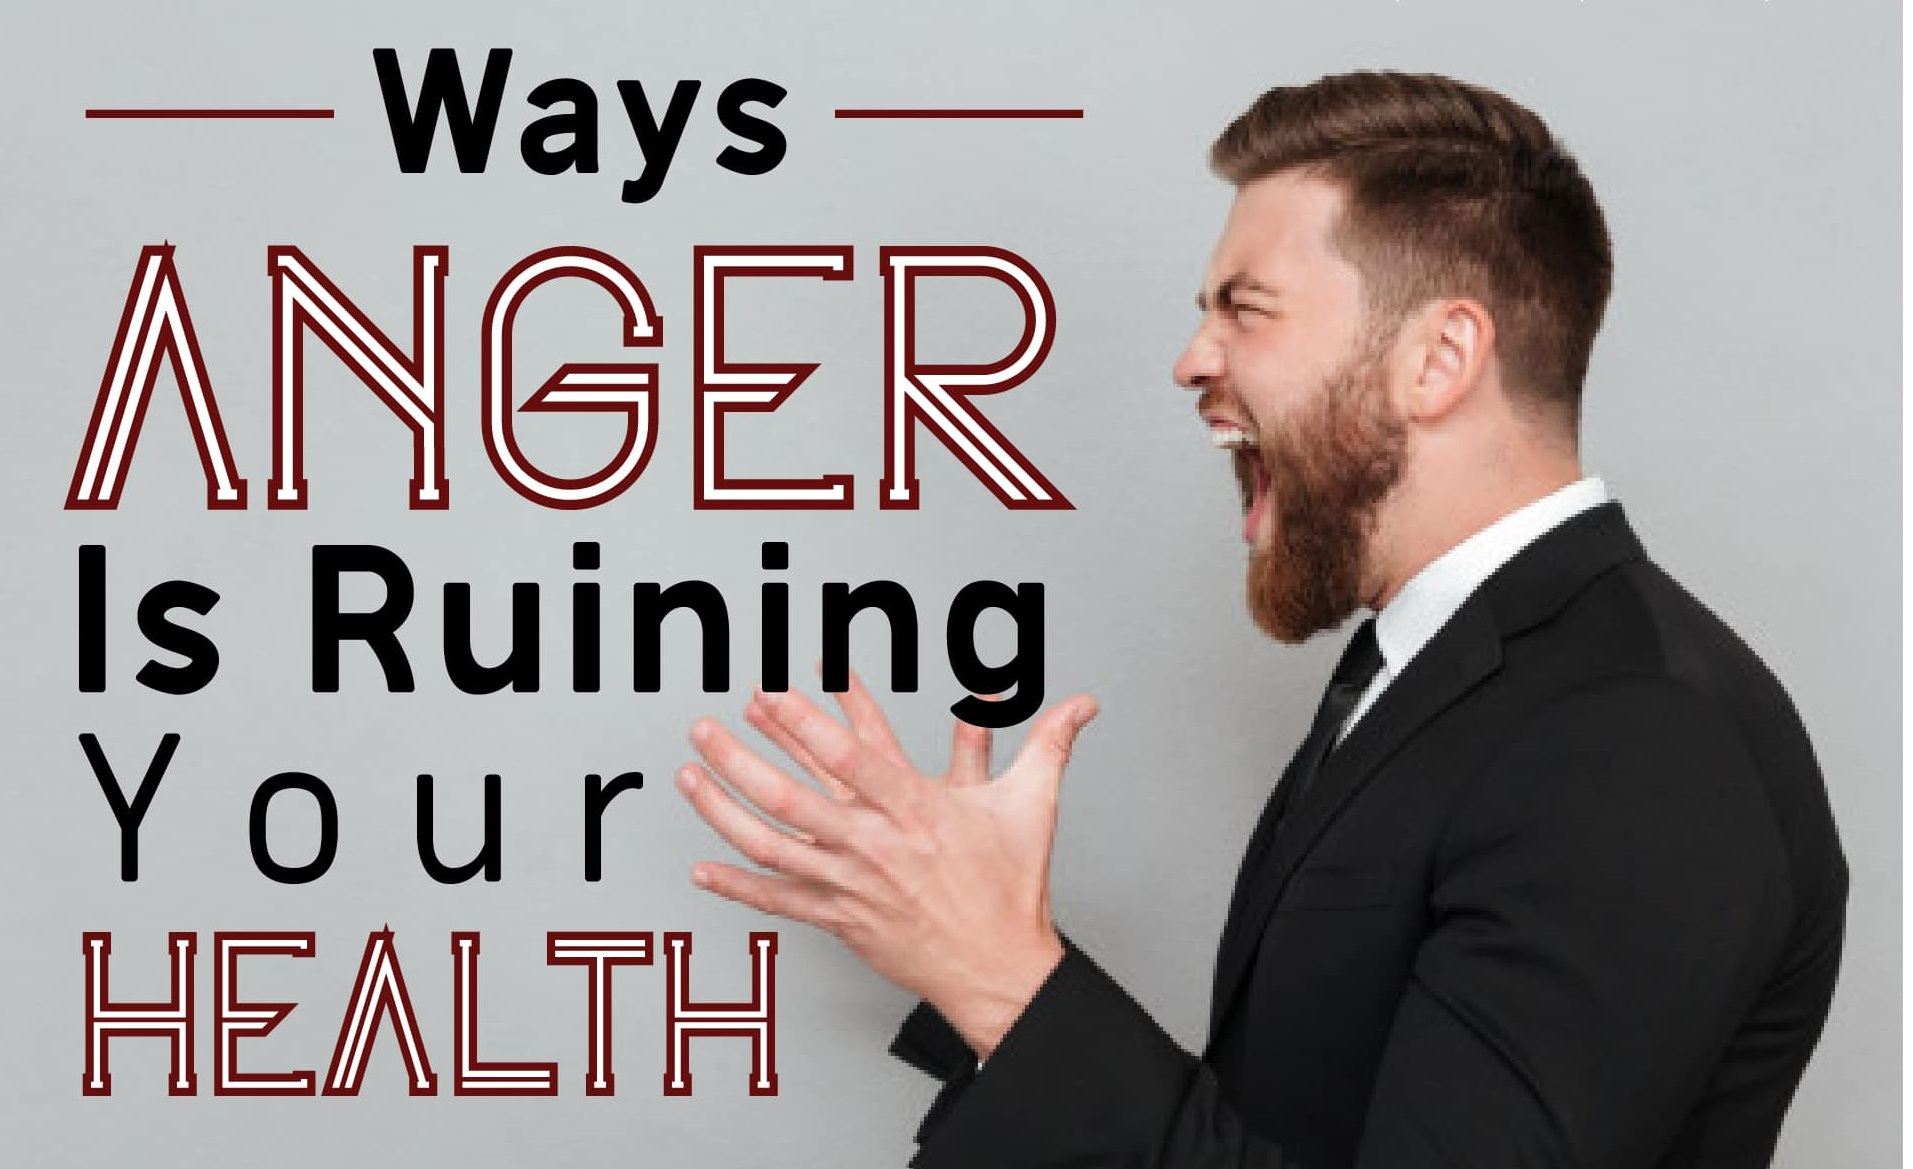 Ways Anger Is Ruining Your Health